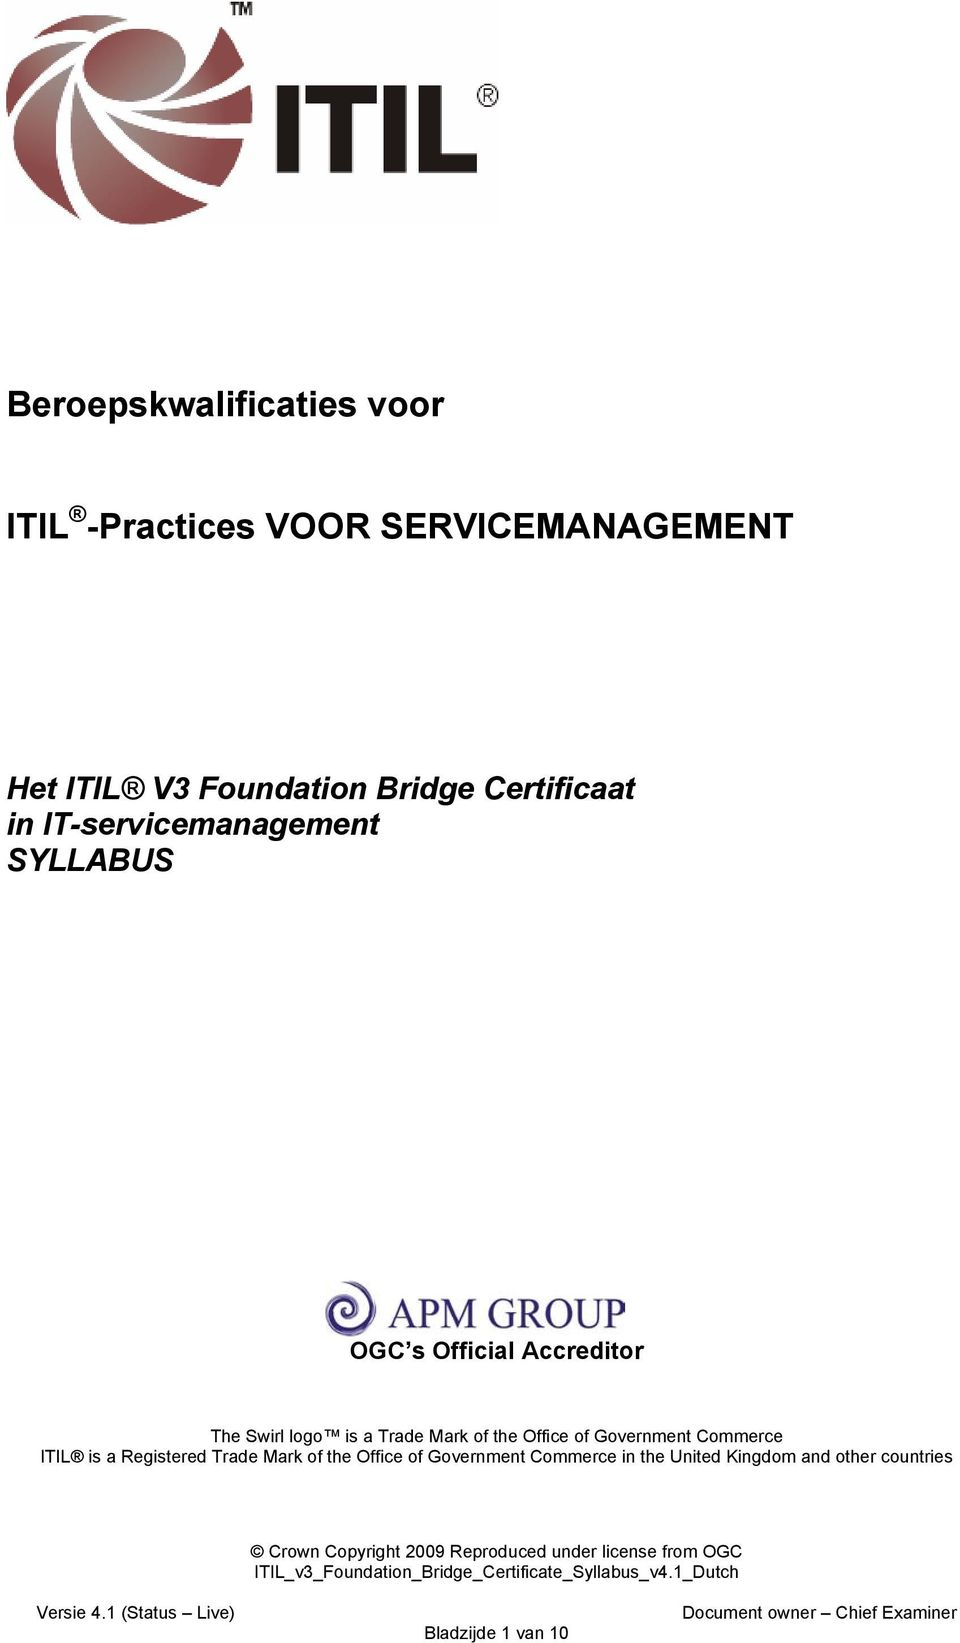 logo is a Trade Mark of the Office of Government Commerce ITIL is a Registered Trade Mark